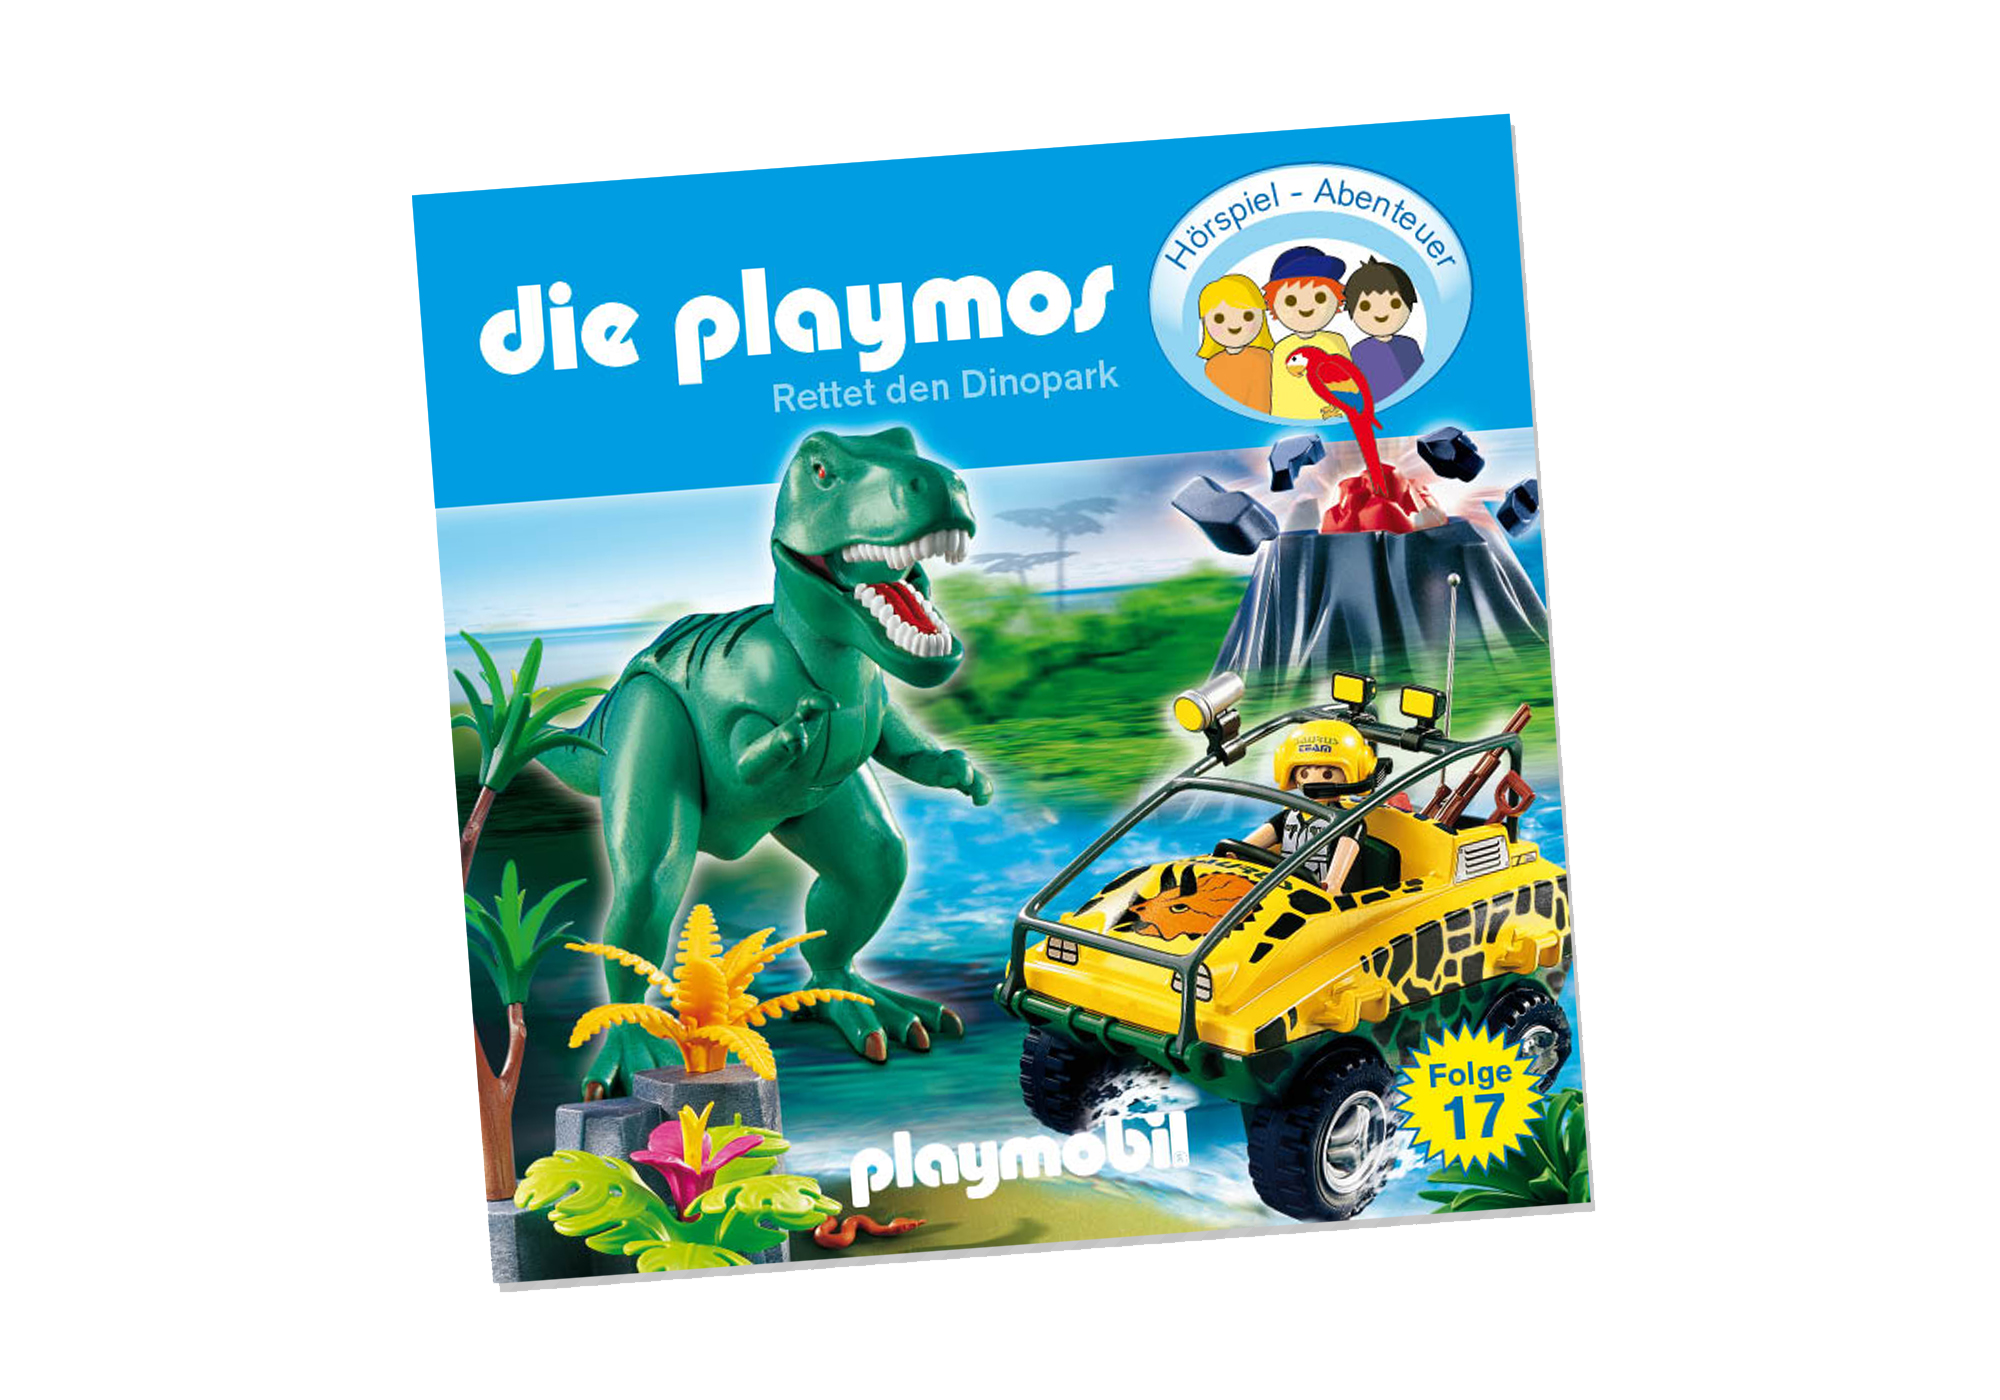 http://media.playmobil.com/i/playmobil/80270_product_detail